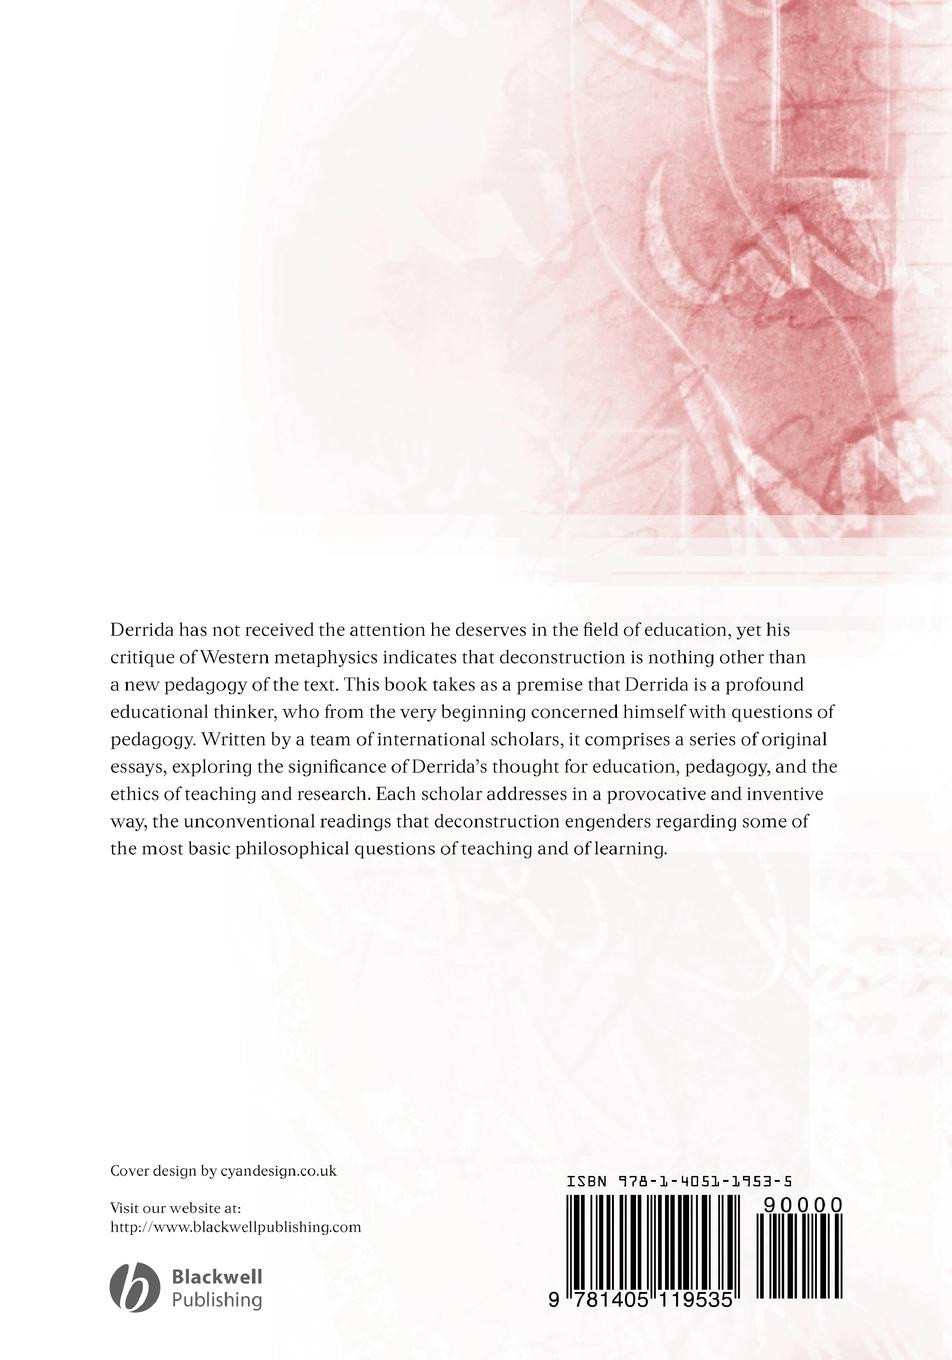 Trifonas, Donada Peters Derrida, Deconstruction and Education. Ethics of Pedagogy and Research trifonas donada peters derrida deconstruction and education ethics of pedagogy and research